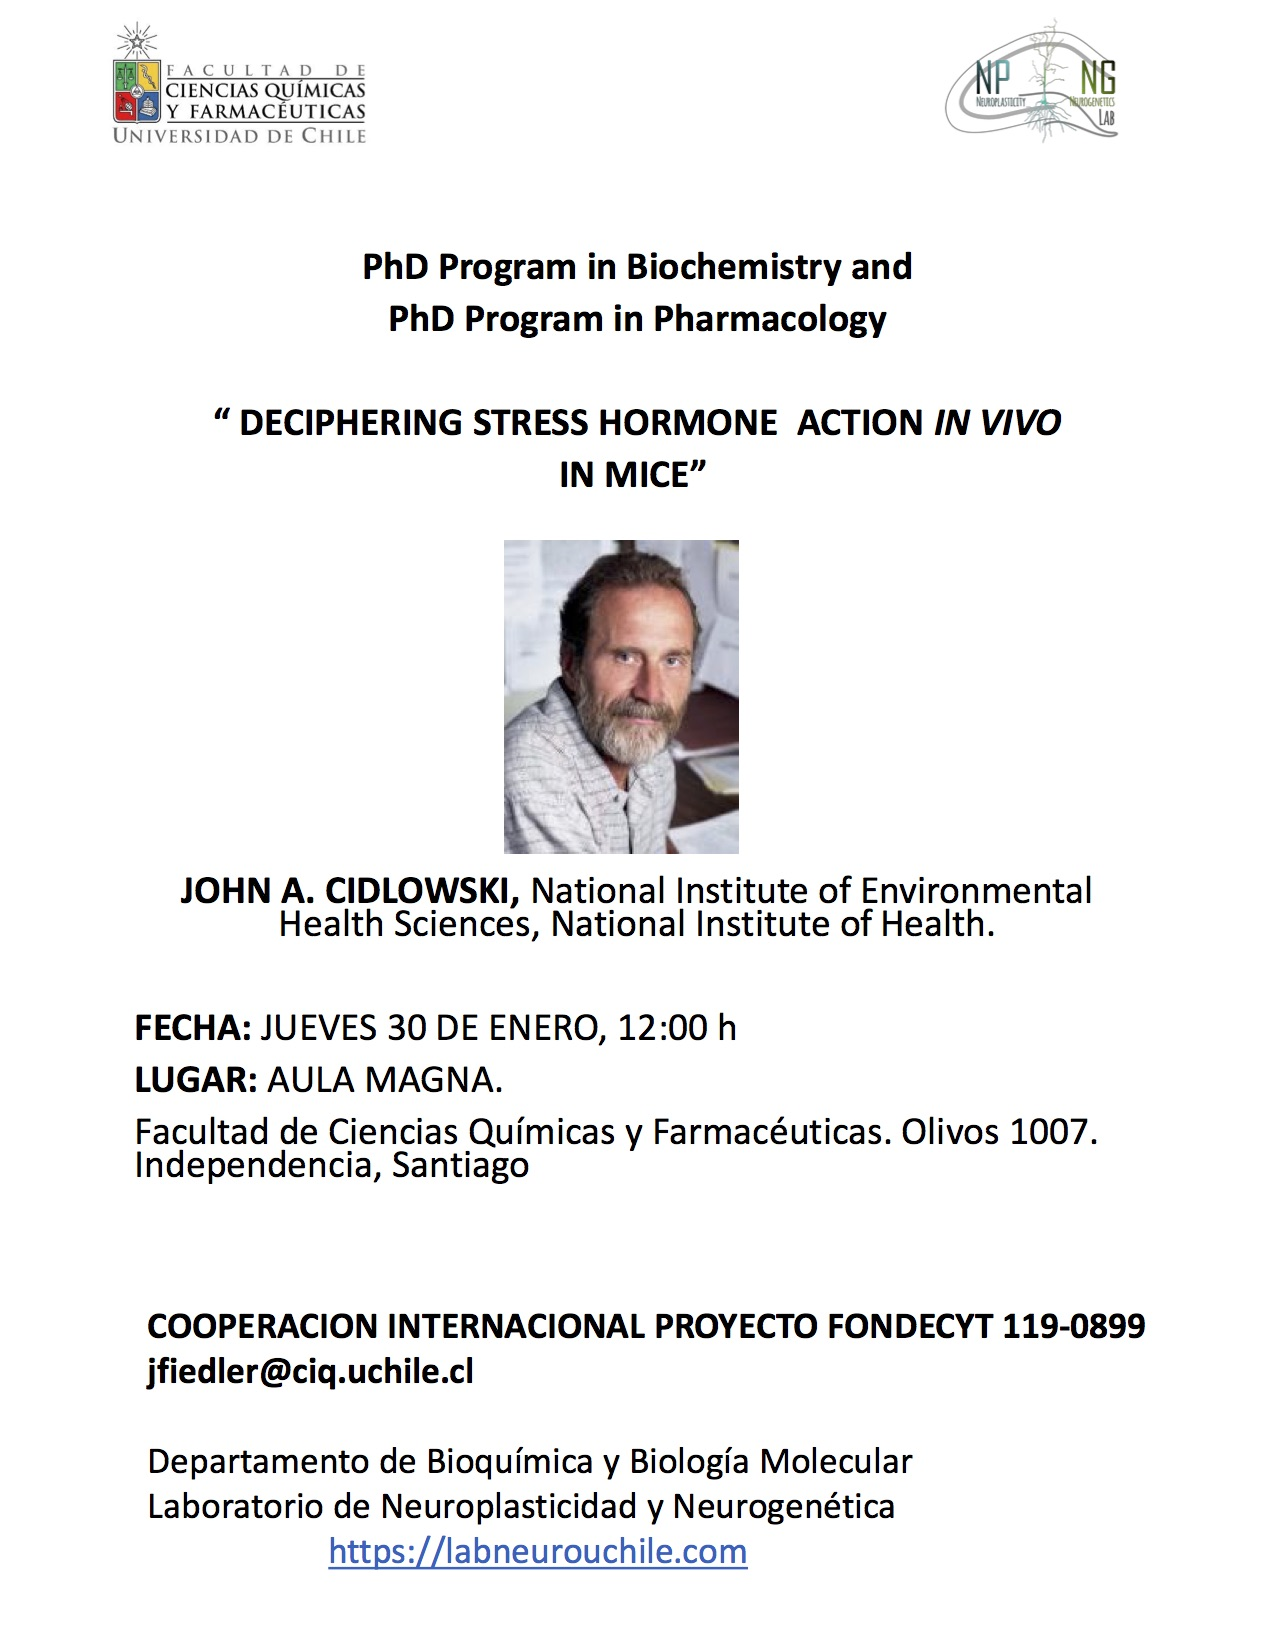 Seminario Dr. John Cidlowski: DECIPHERING STRESS HORMONE ACTION IN VIVO IN MICE graphic